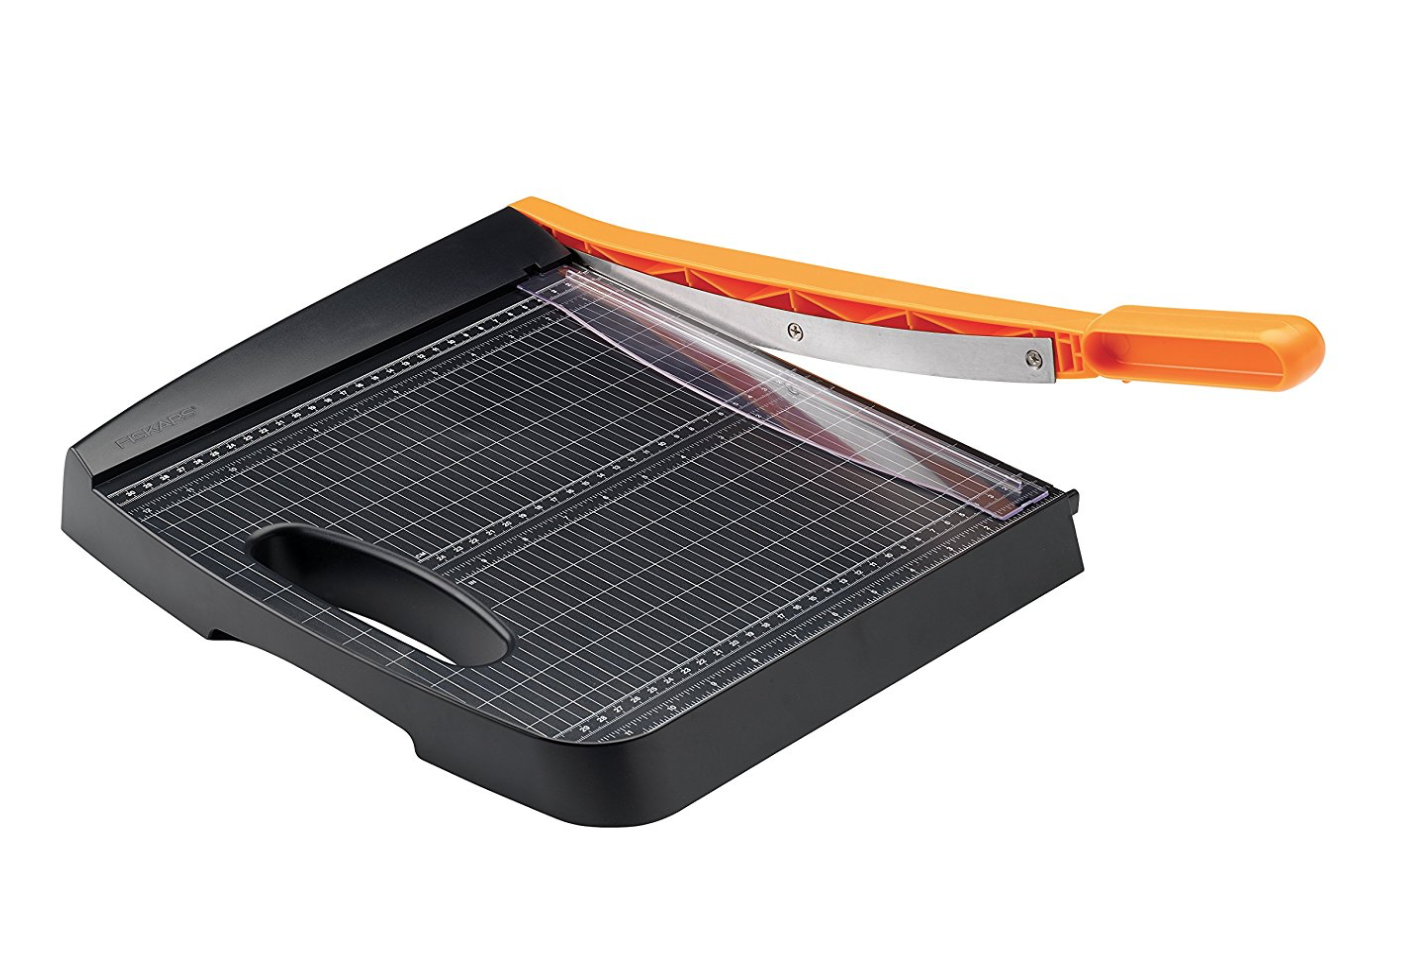 Fiskars Paper Cutter - From Amazon: This razor sharp paper cutter will last you for years!